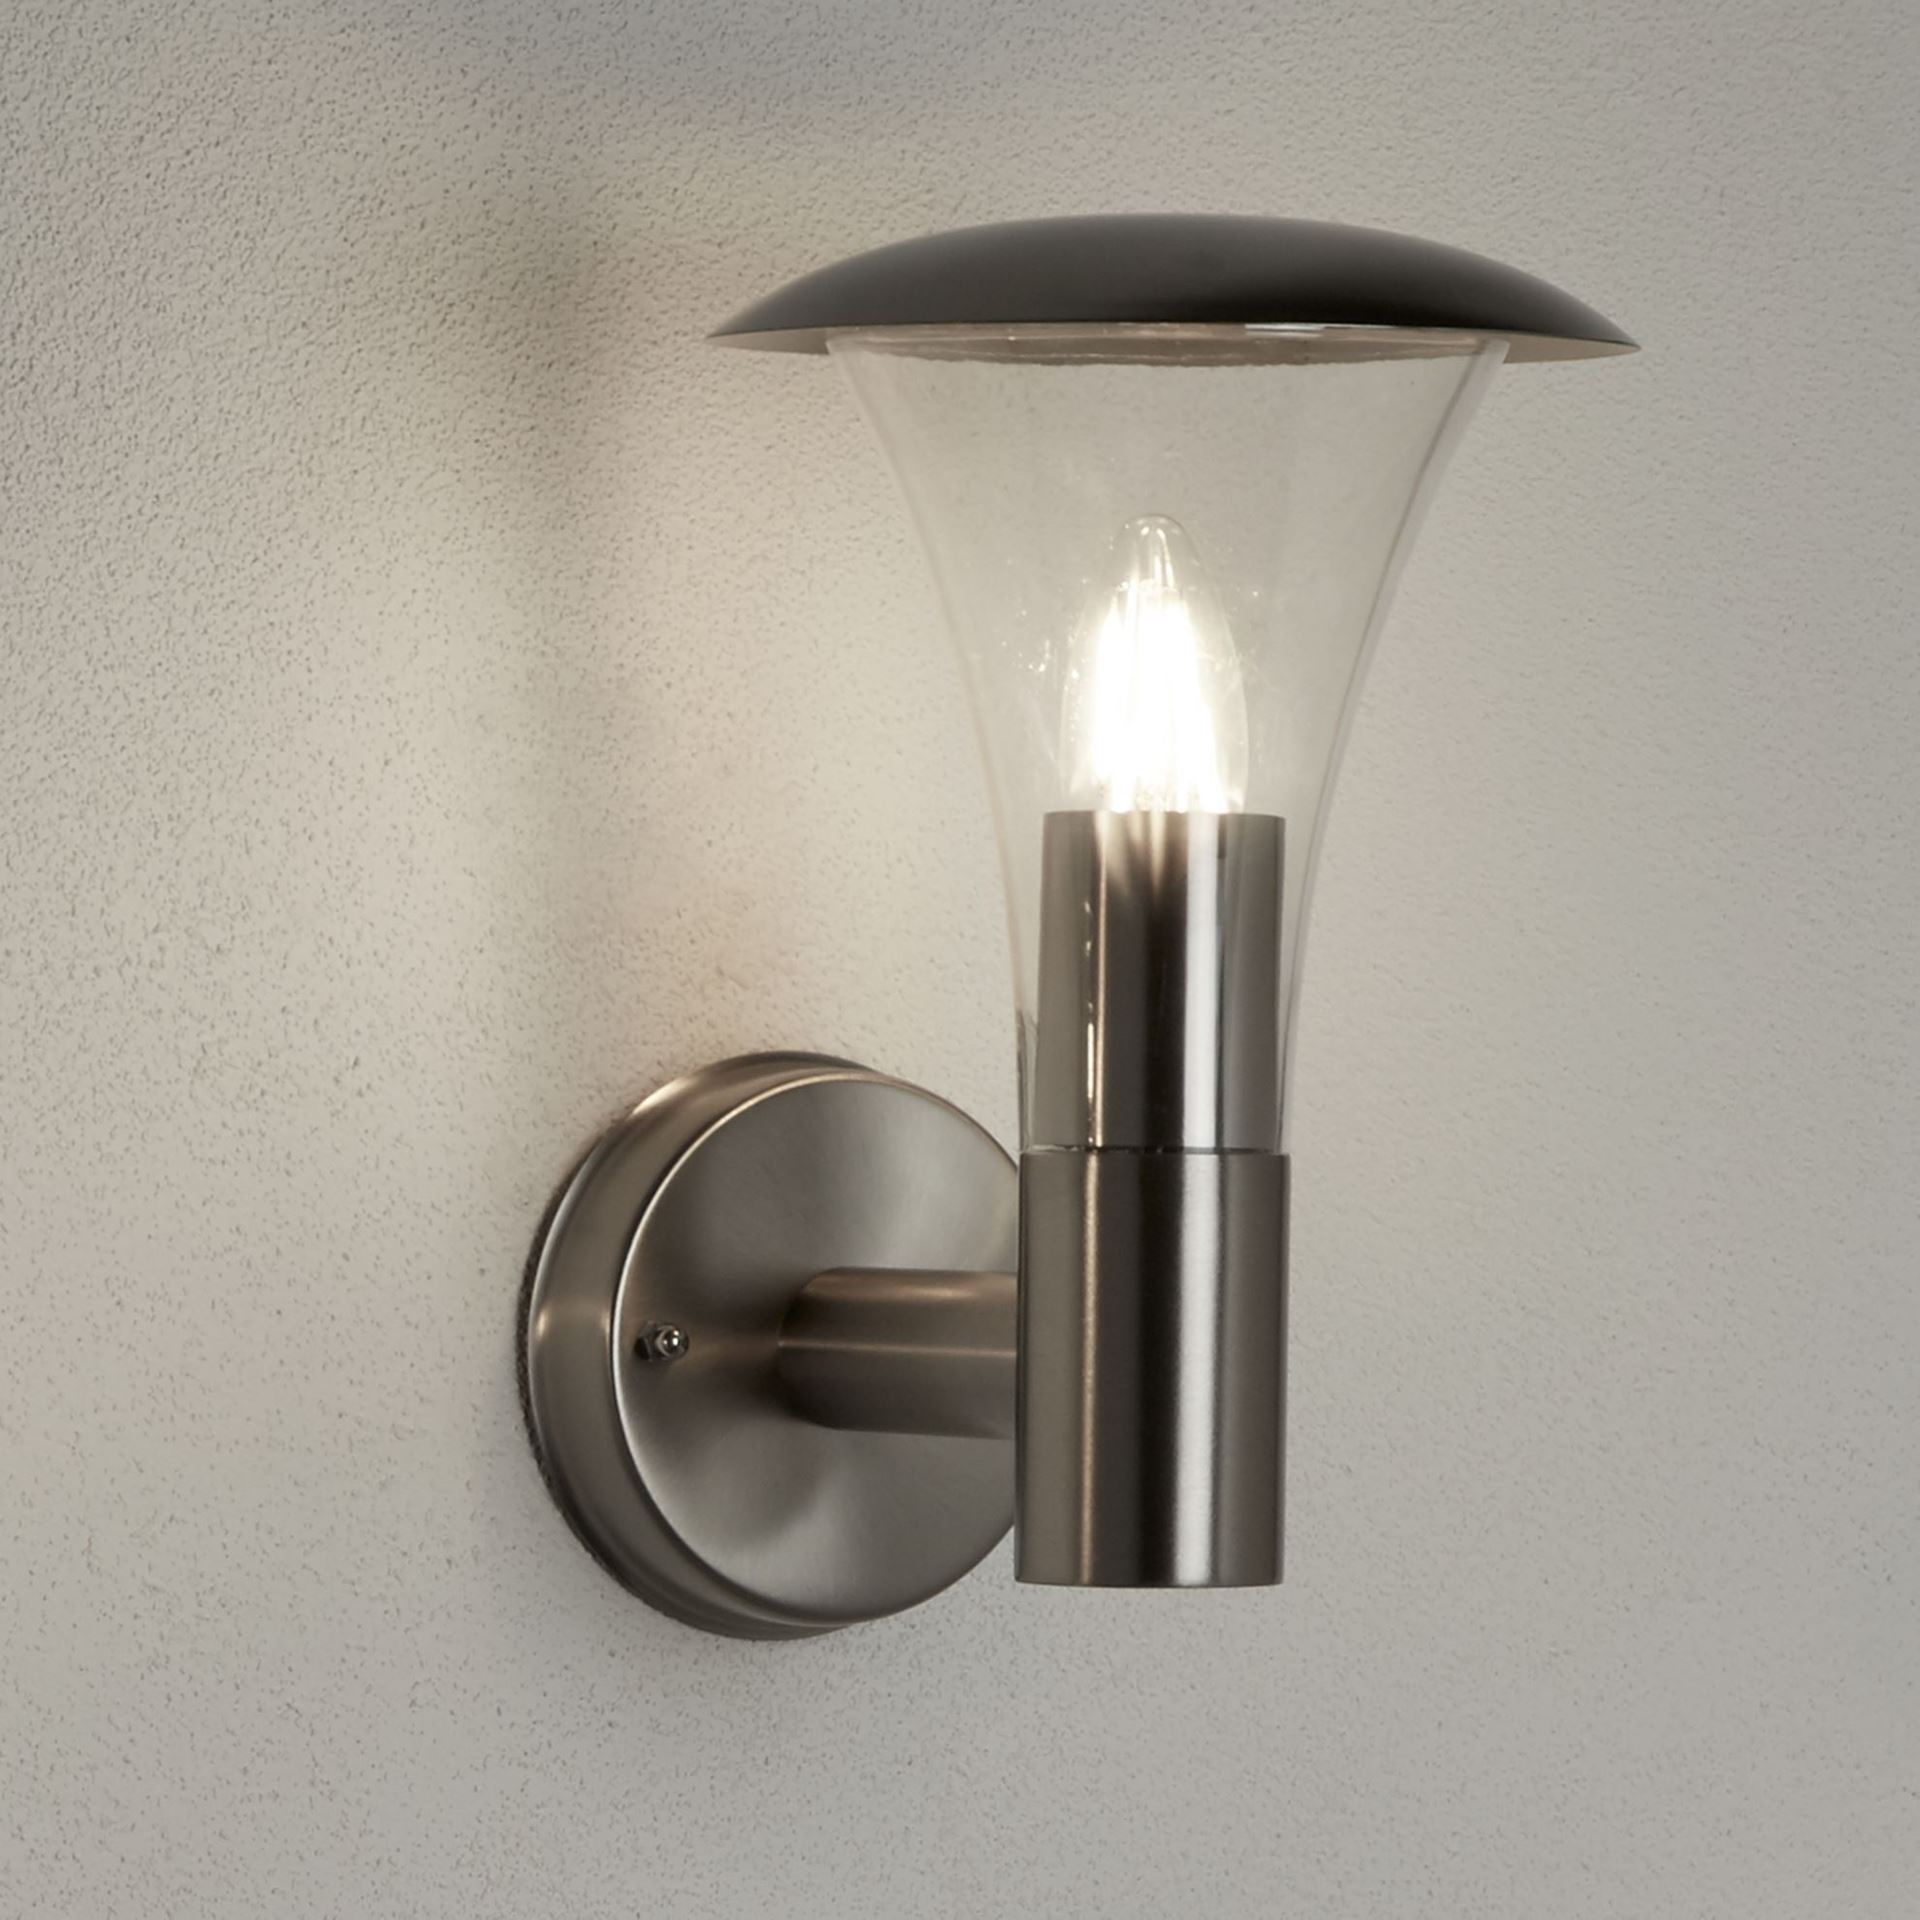 STRAND IP44 STAINLESS STEEL OUTDOOR WALL LIGHT WITH CLEAR POLYCARBONATE DIFFUSER 096